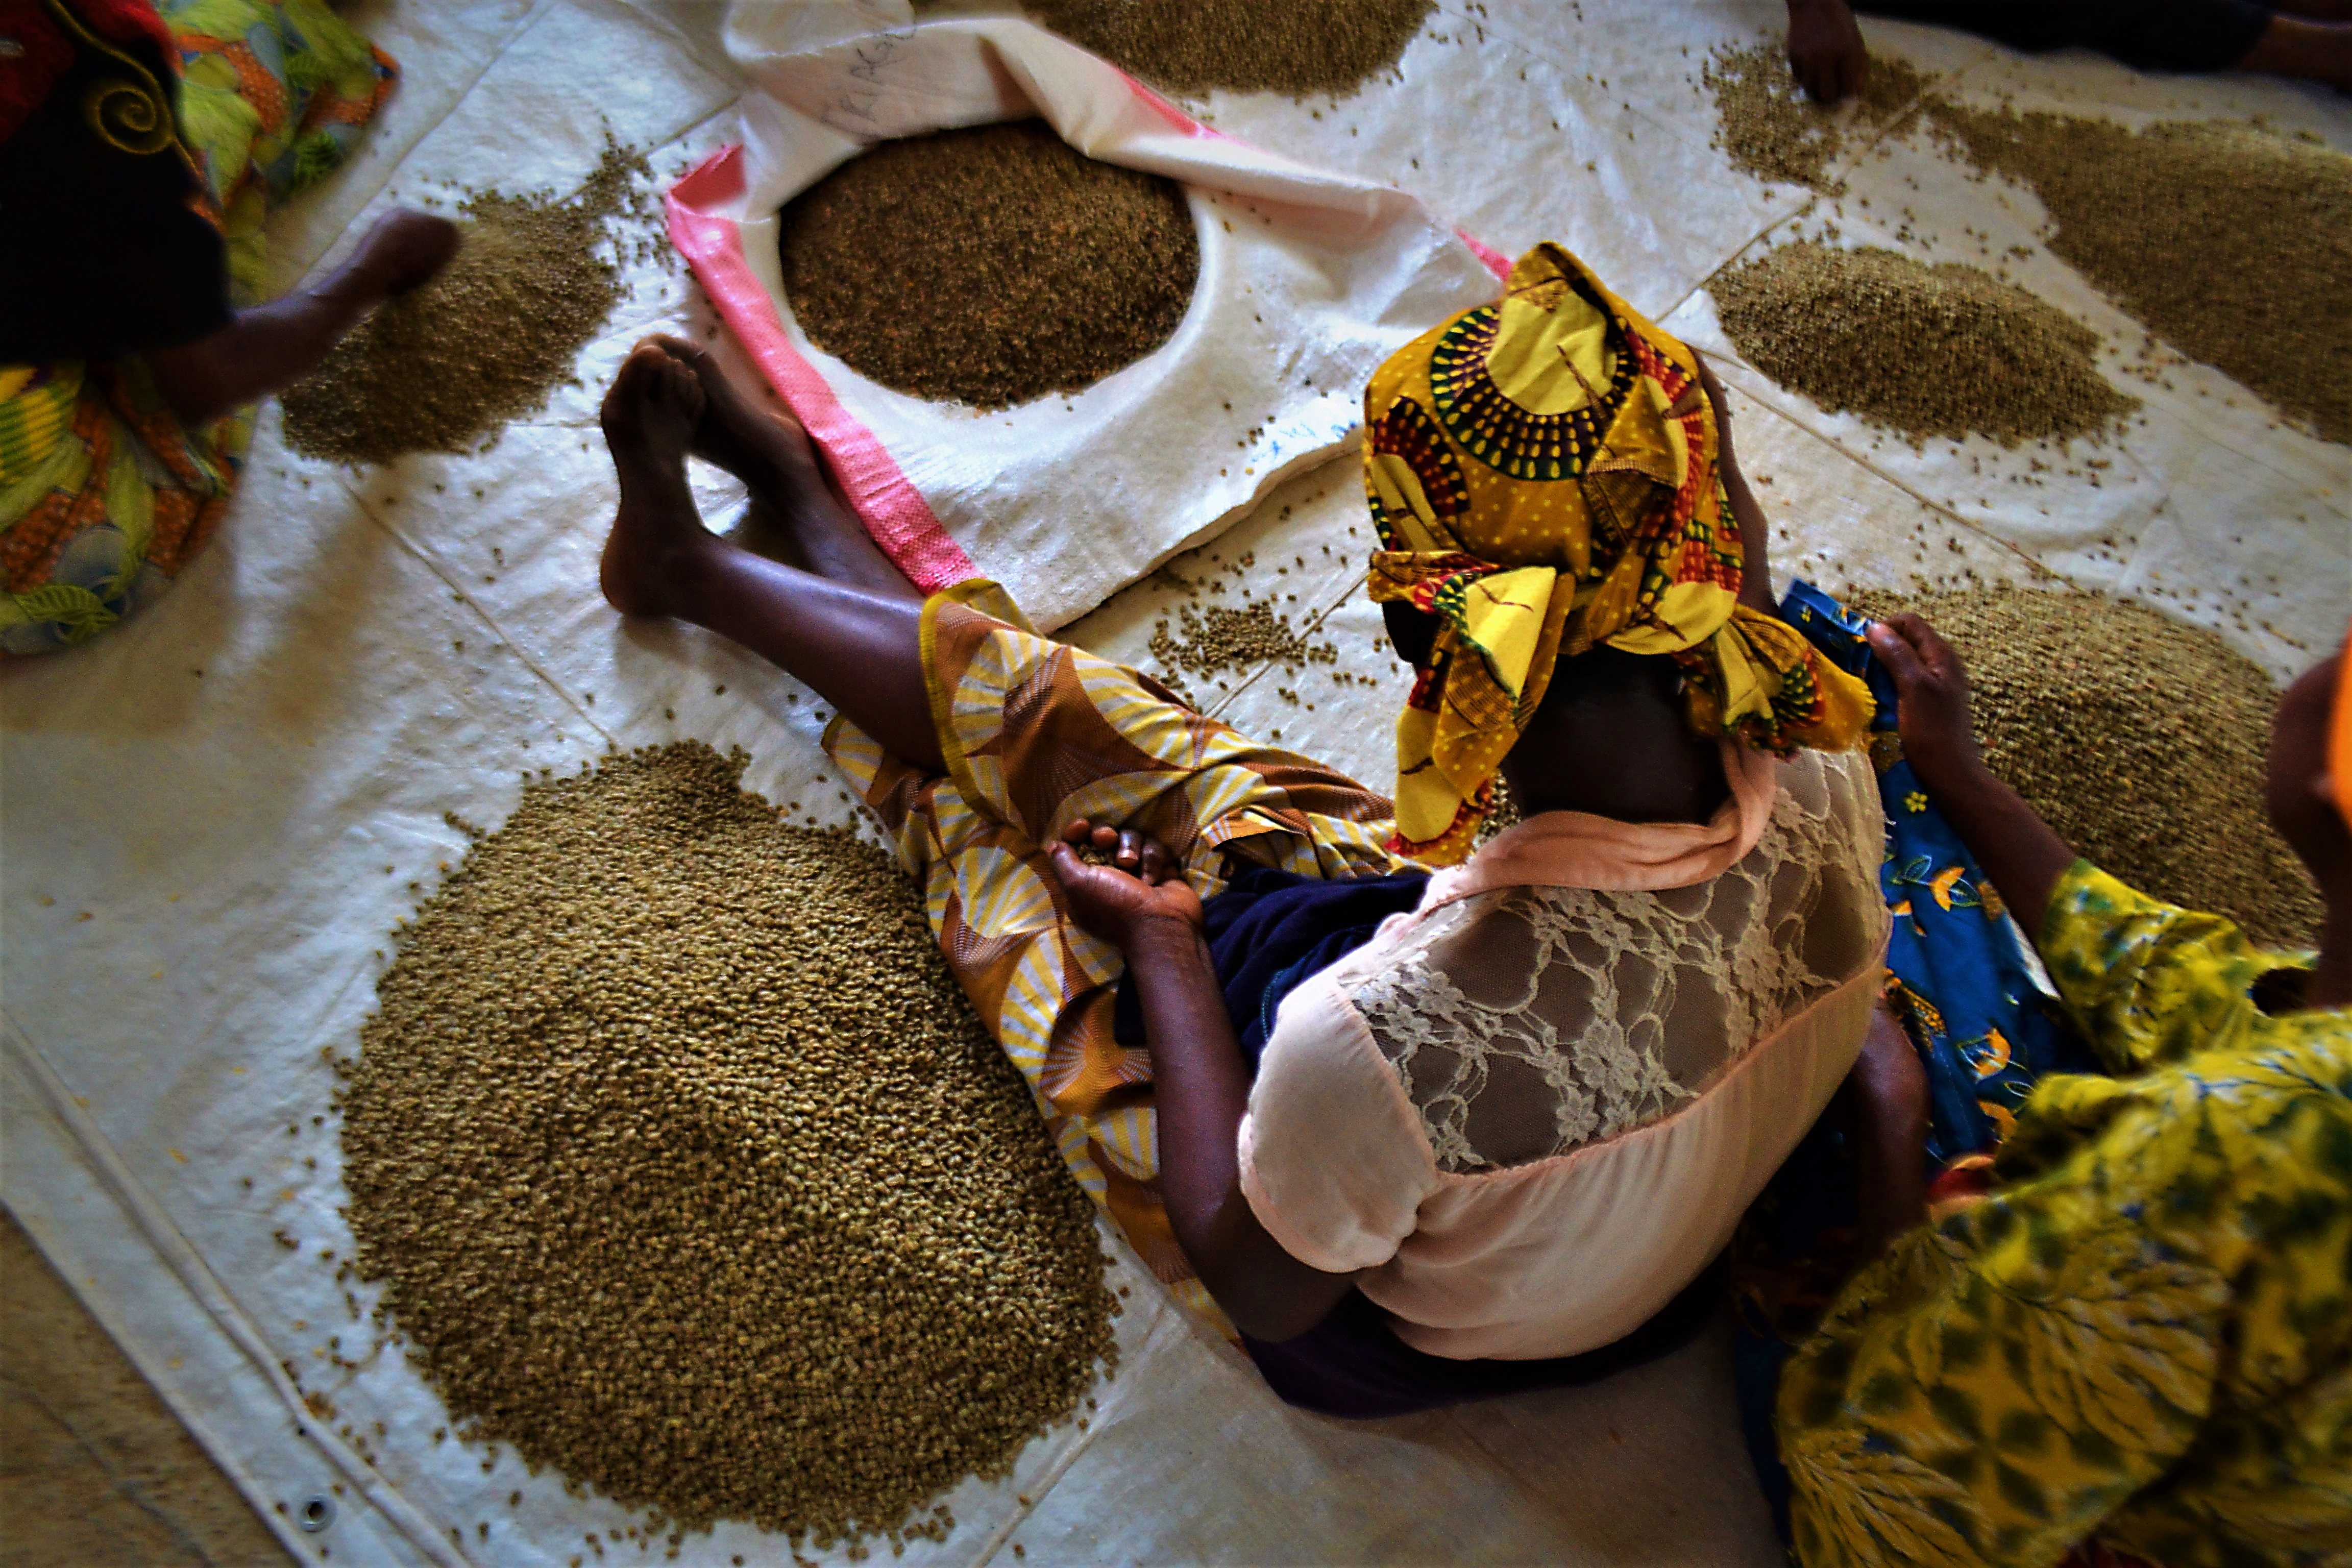 Coffee bean sorting so only the finest beans are used